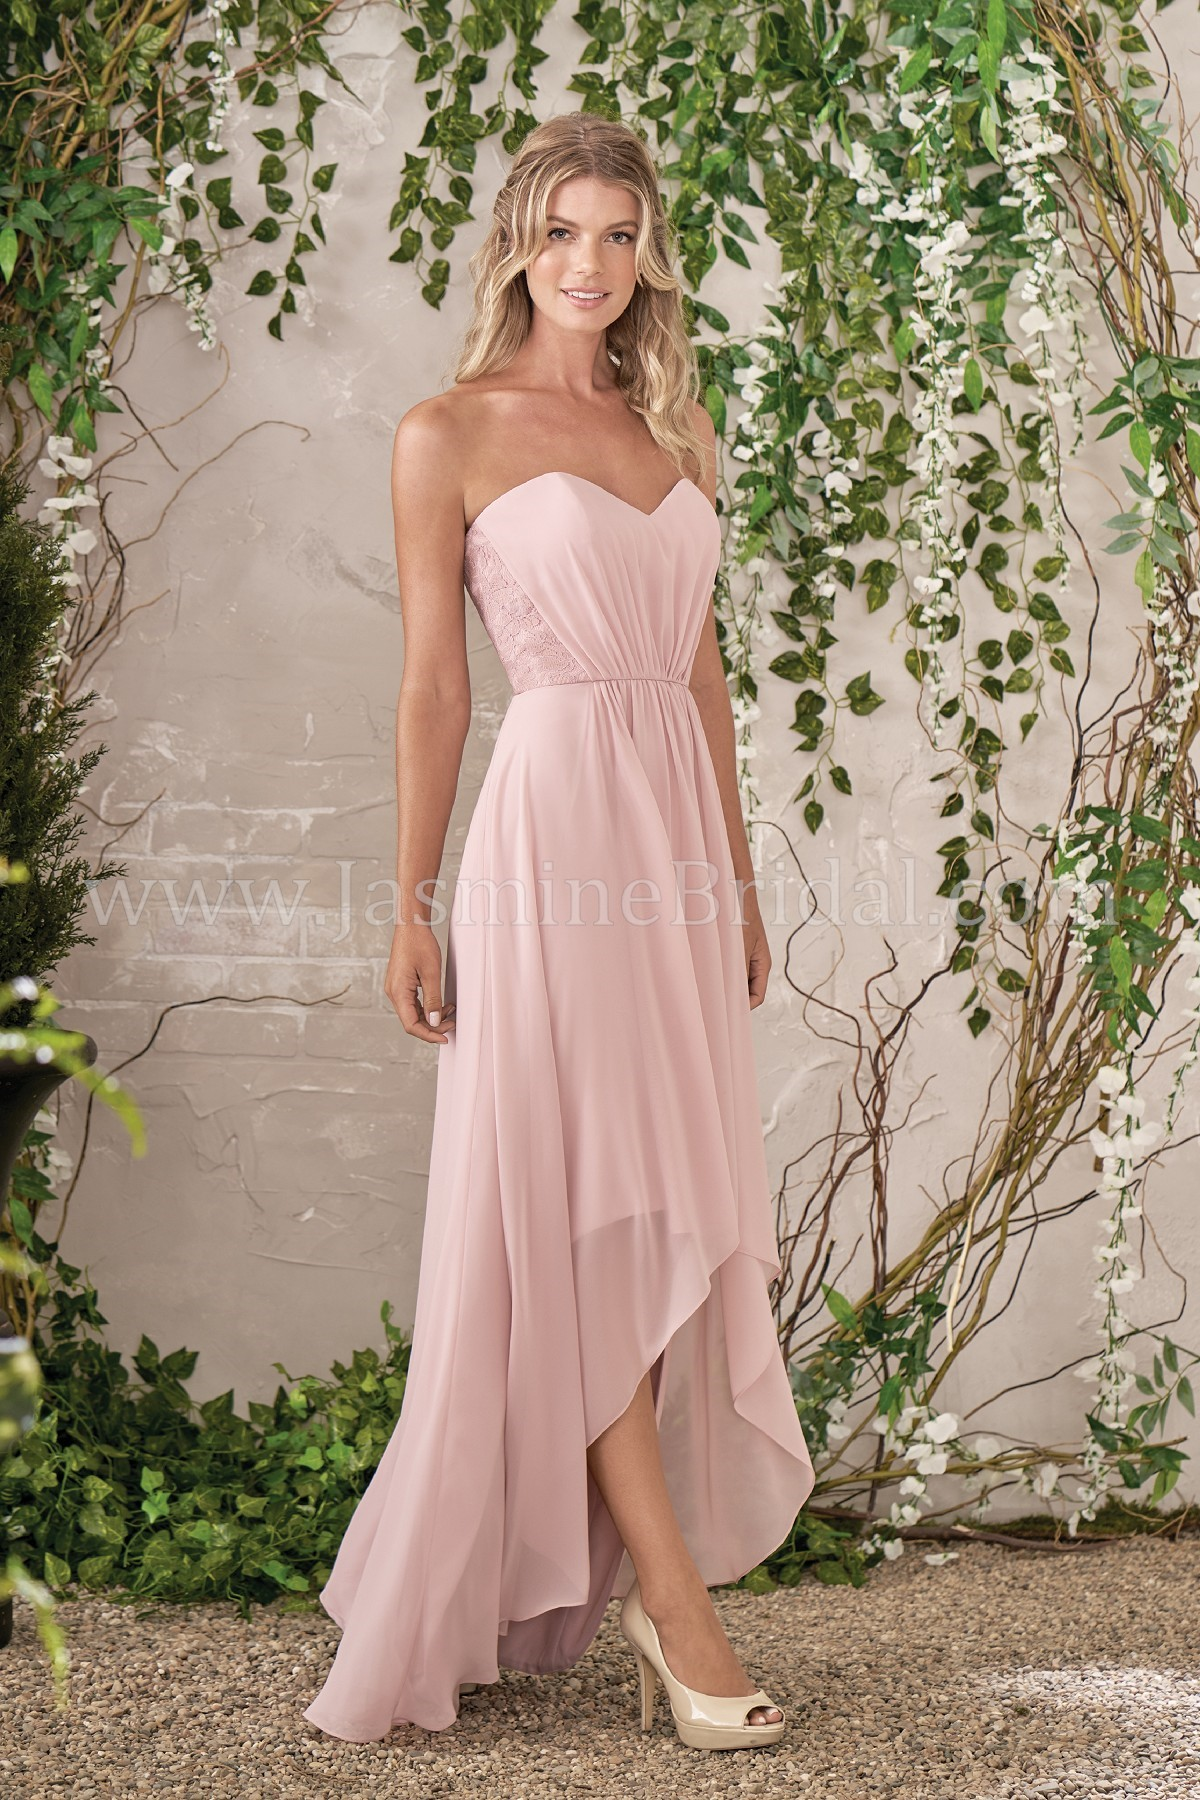 B193006 Sweetheart Neckline Poly Chiffon With Lace High Low Bridesmaid Dress